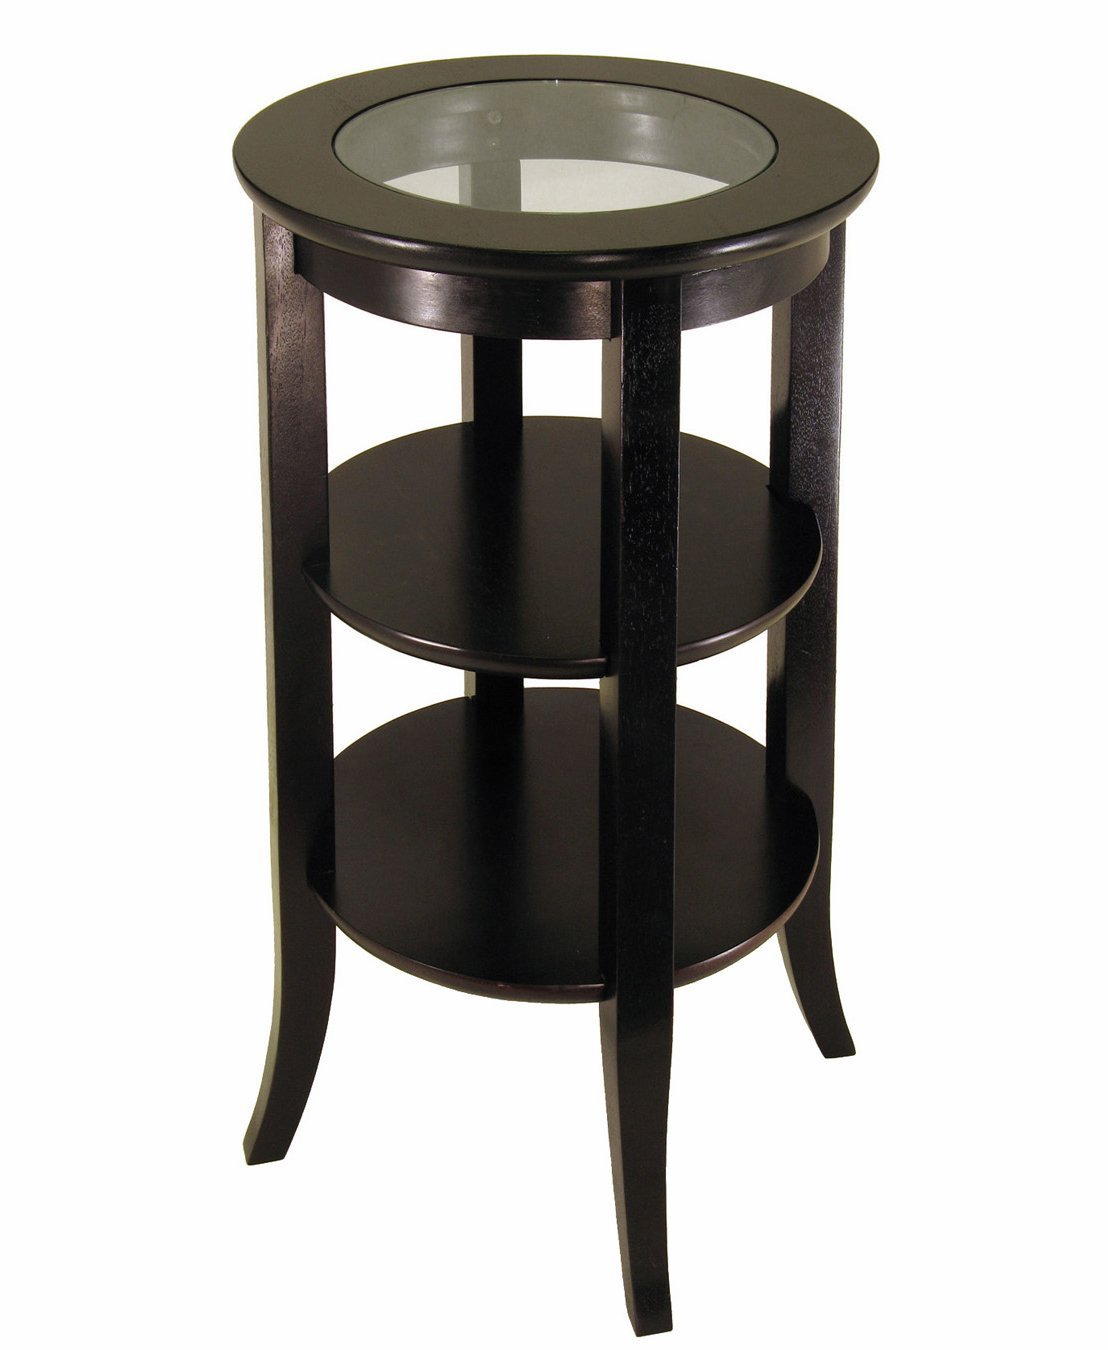 looking good target wood diy crate black barrel and side table round likable pedestal outdoor accent full size living rooms glass top pier one dining bench wicker couch pendant